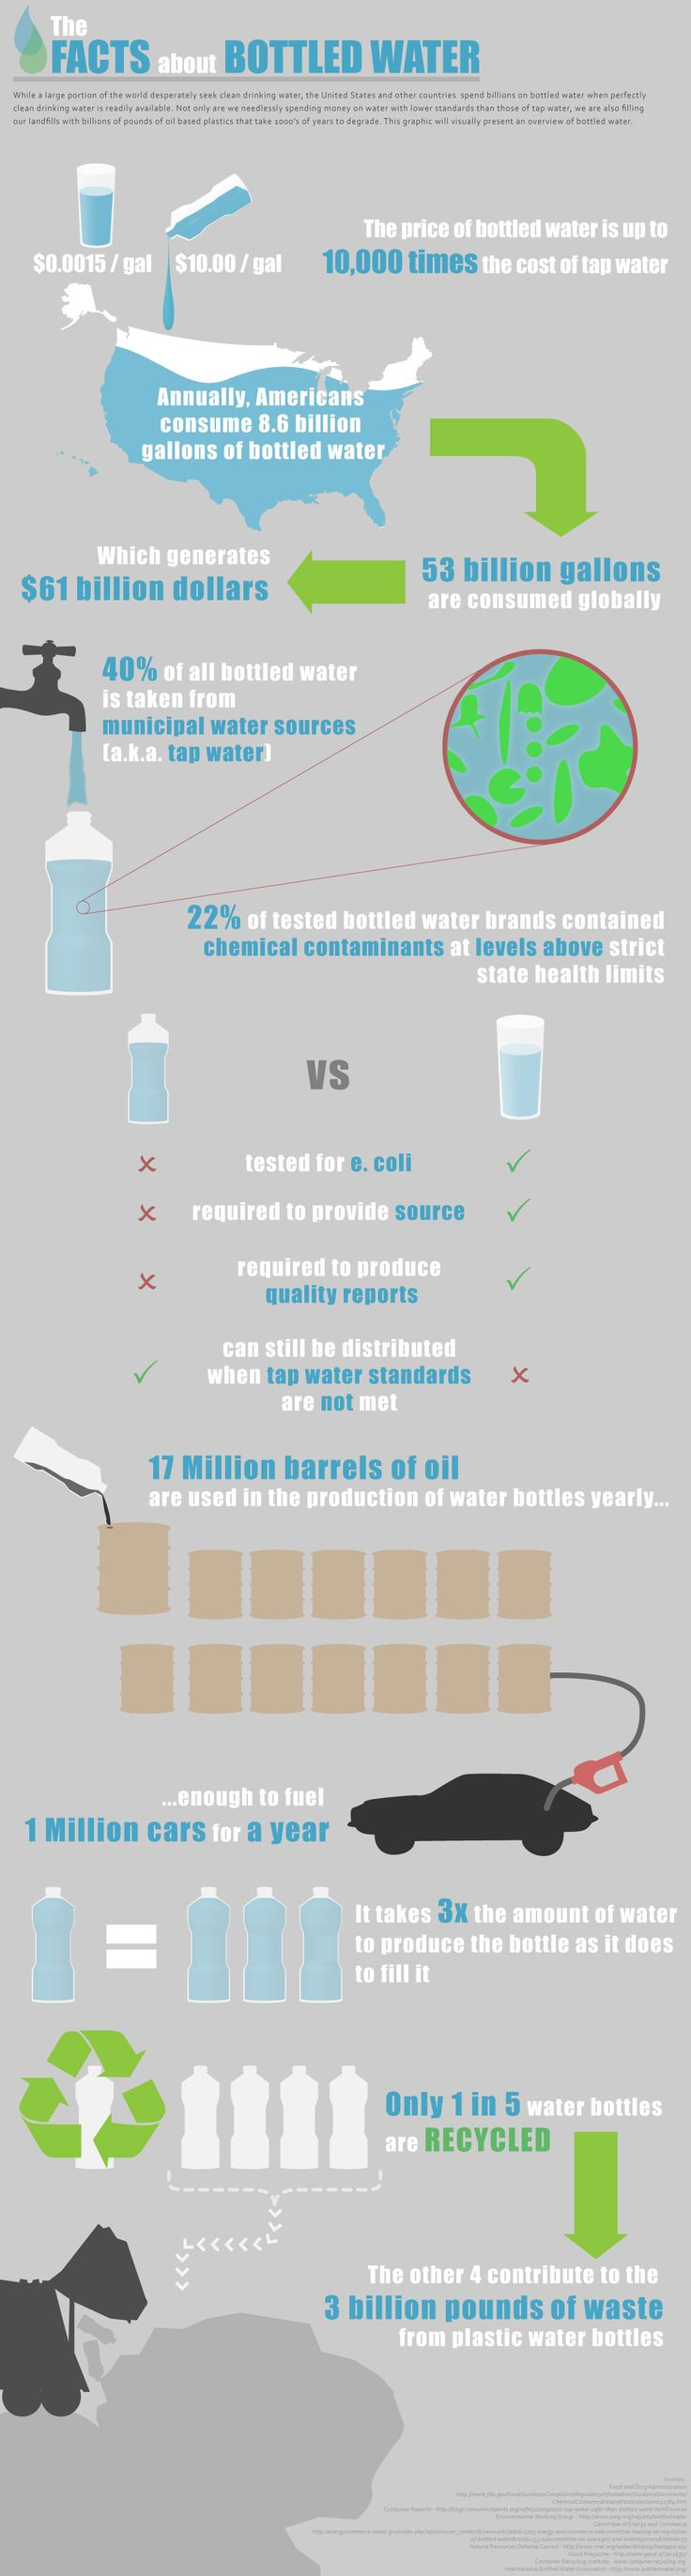 Facts about bottled water - better drink from the tap!